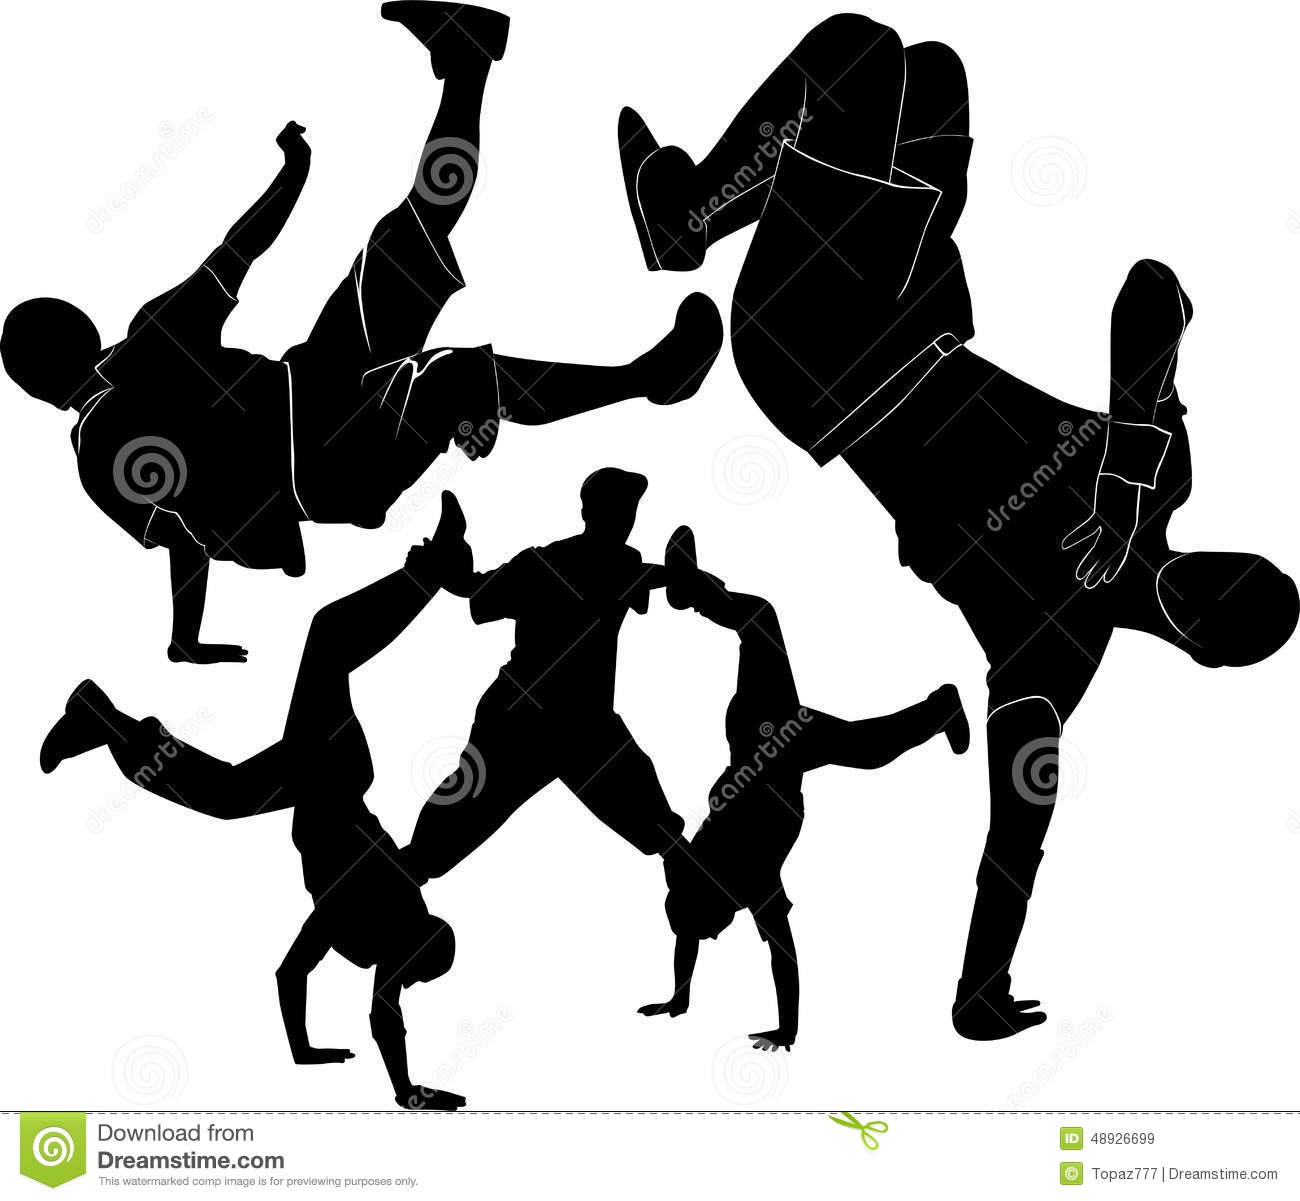 Breakdance silhouette stock vector. Illustration of cool ...